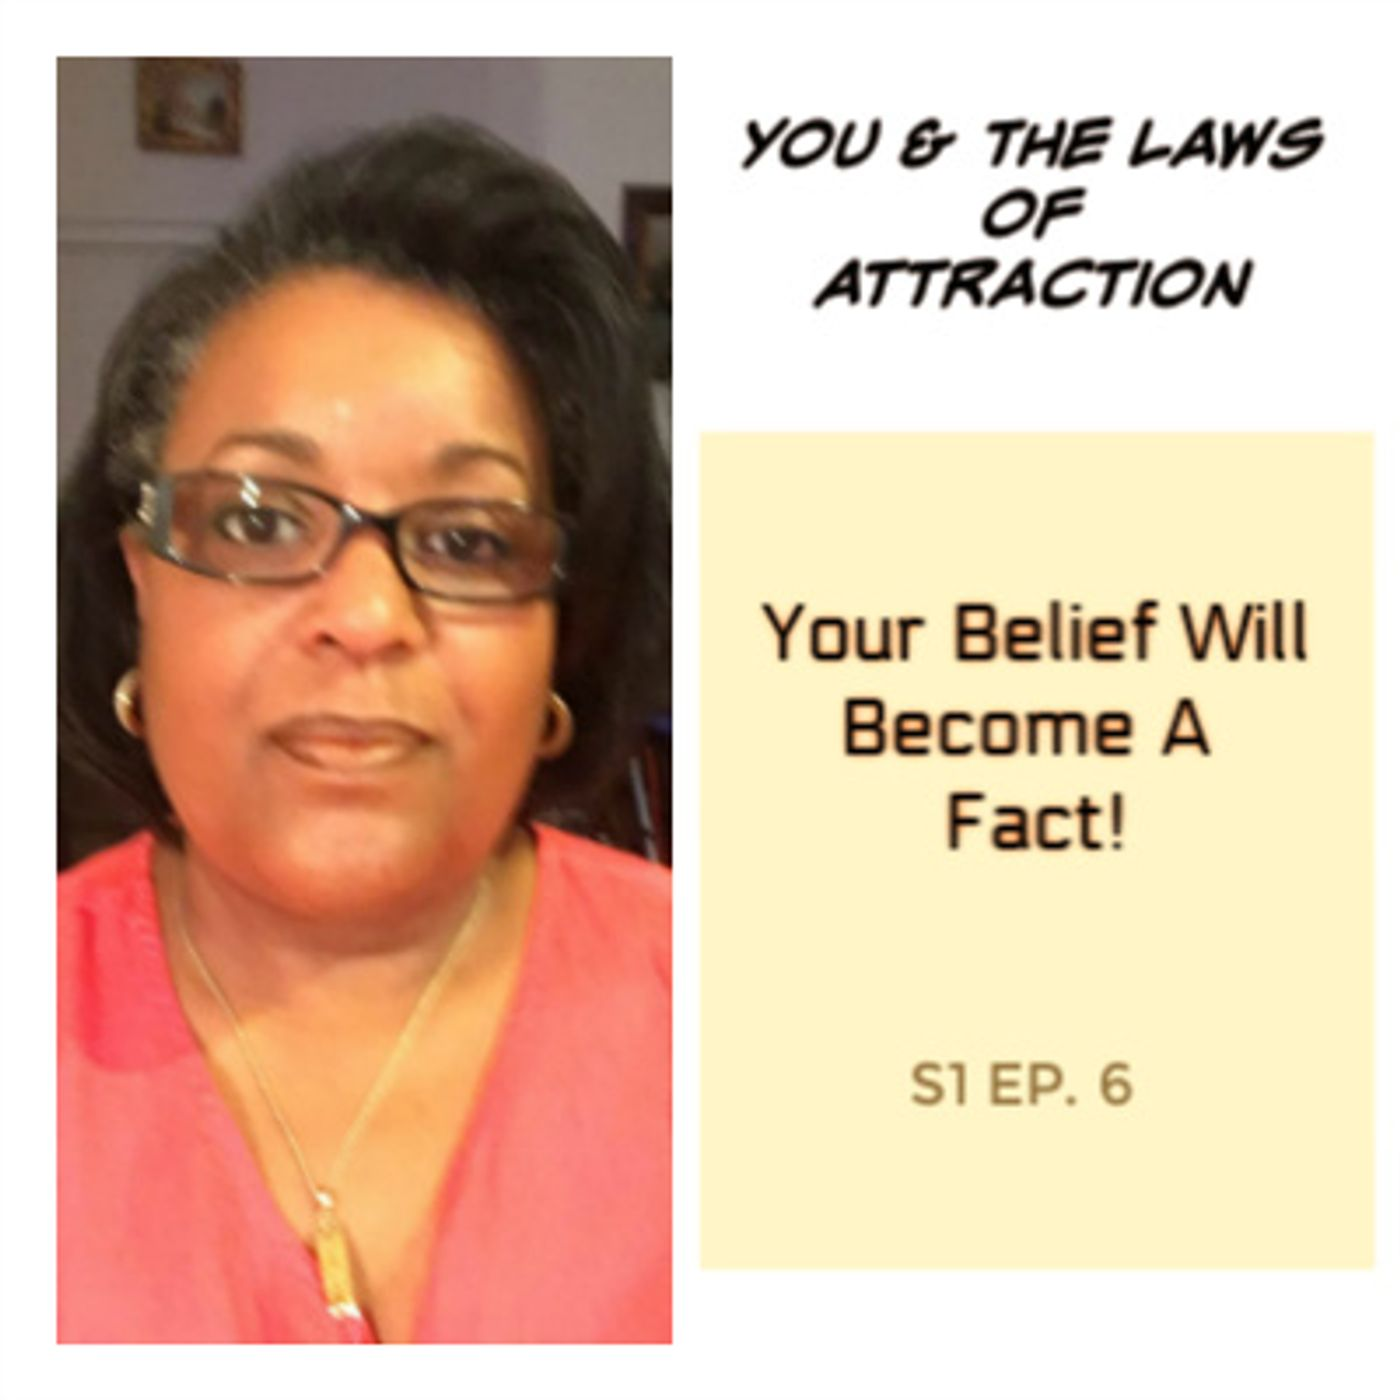 Your Belief Will Become A Fact